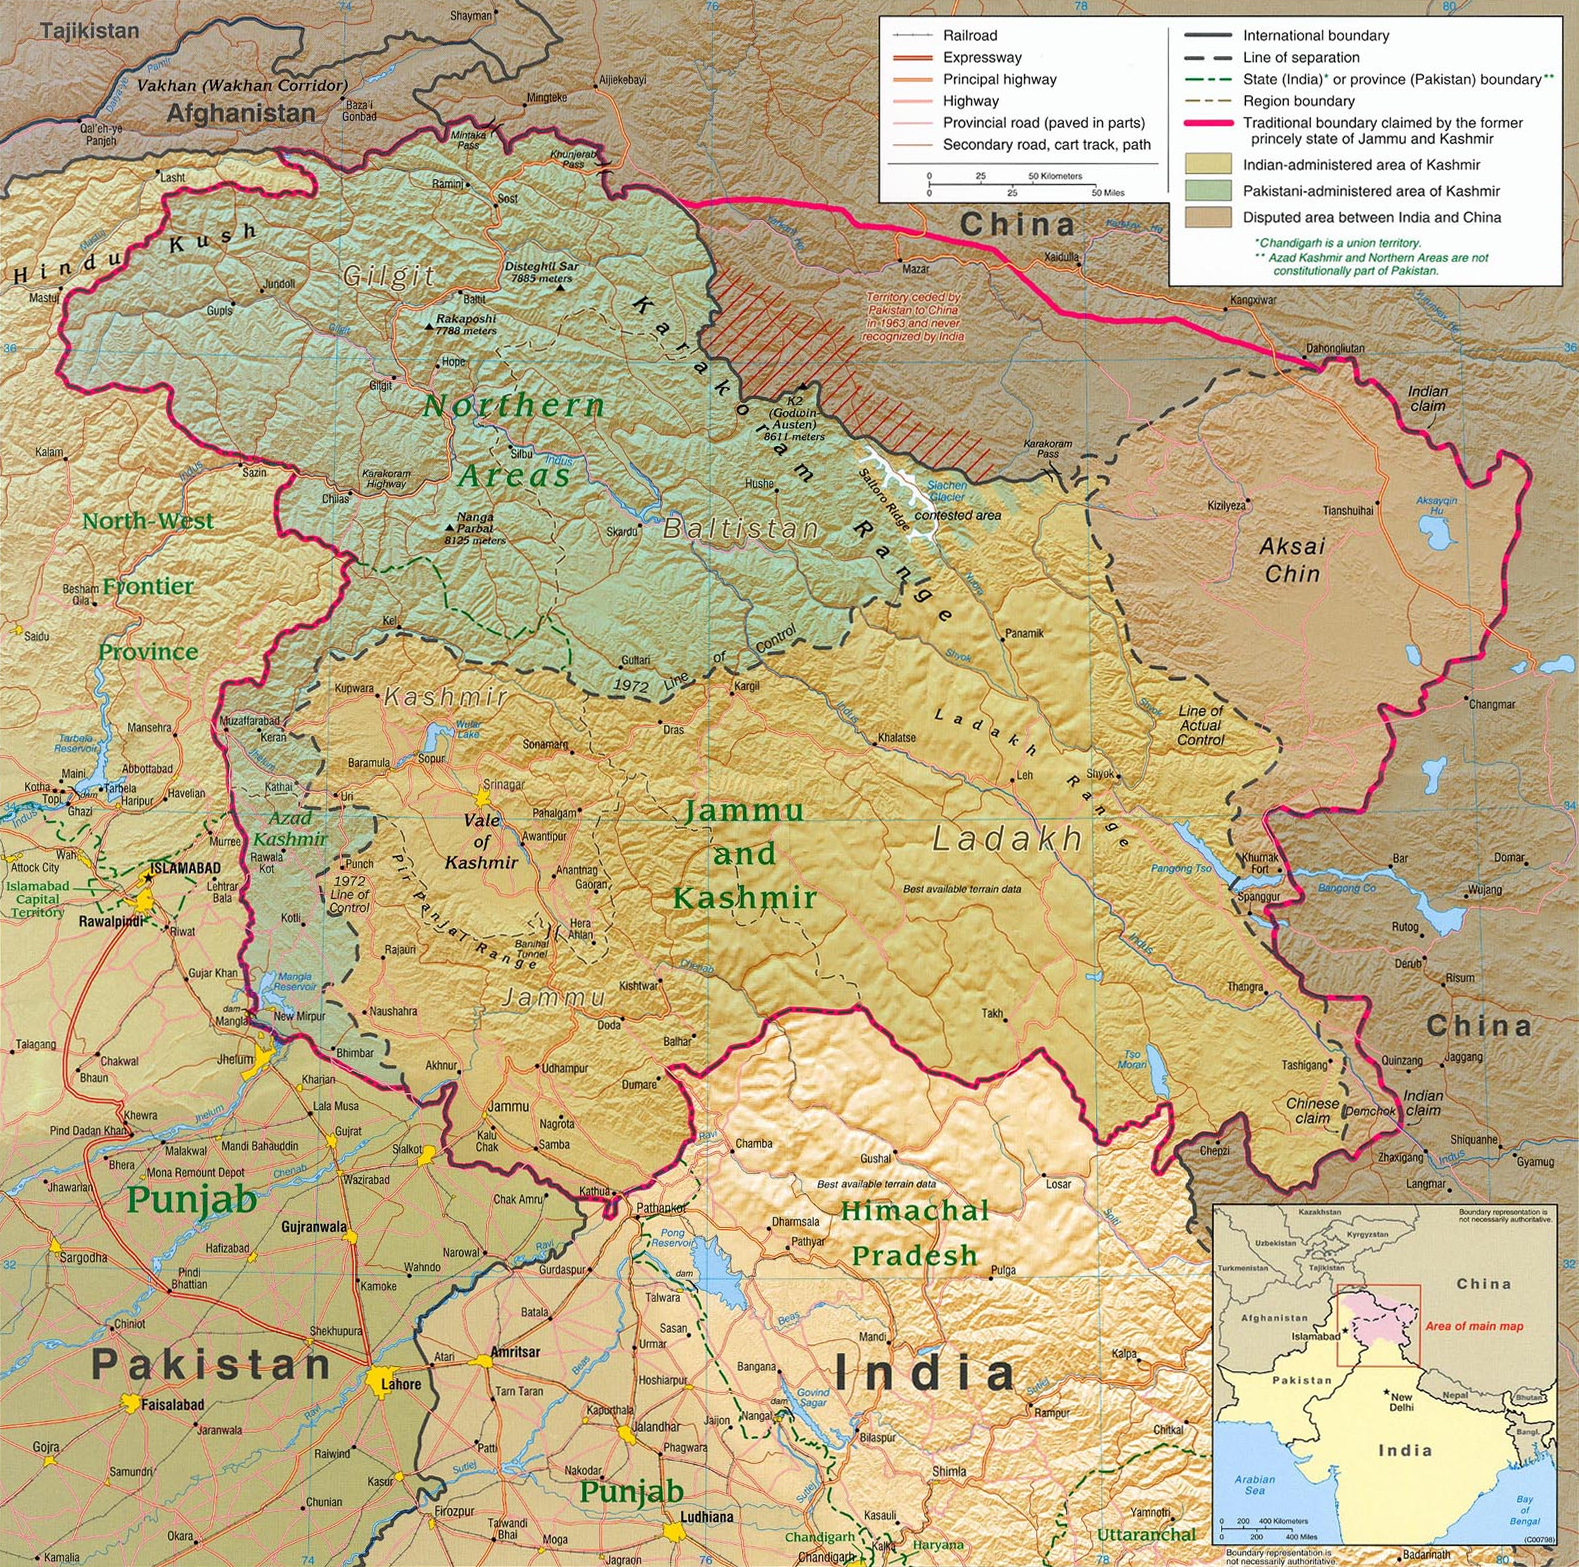 the-conflict-in-kashmir